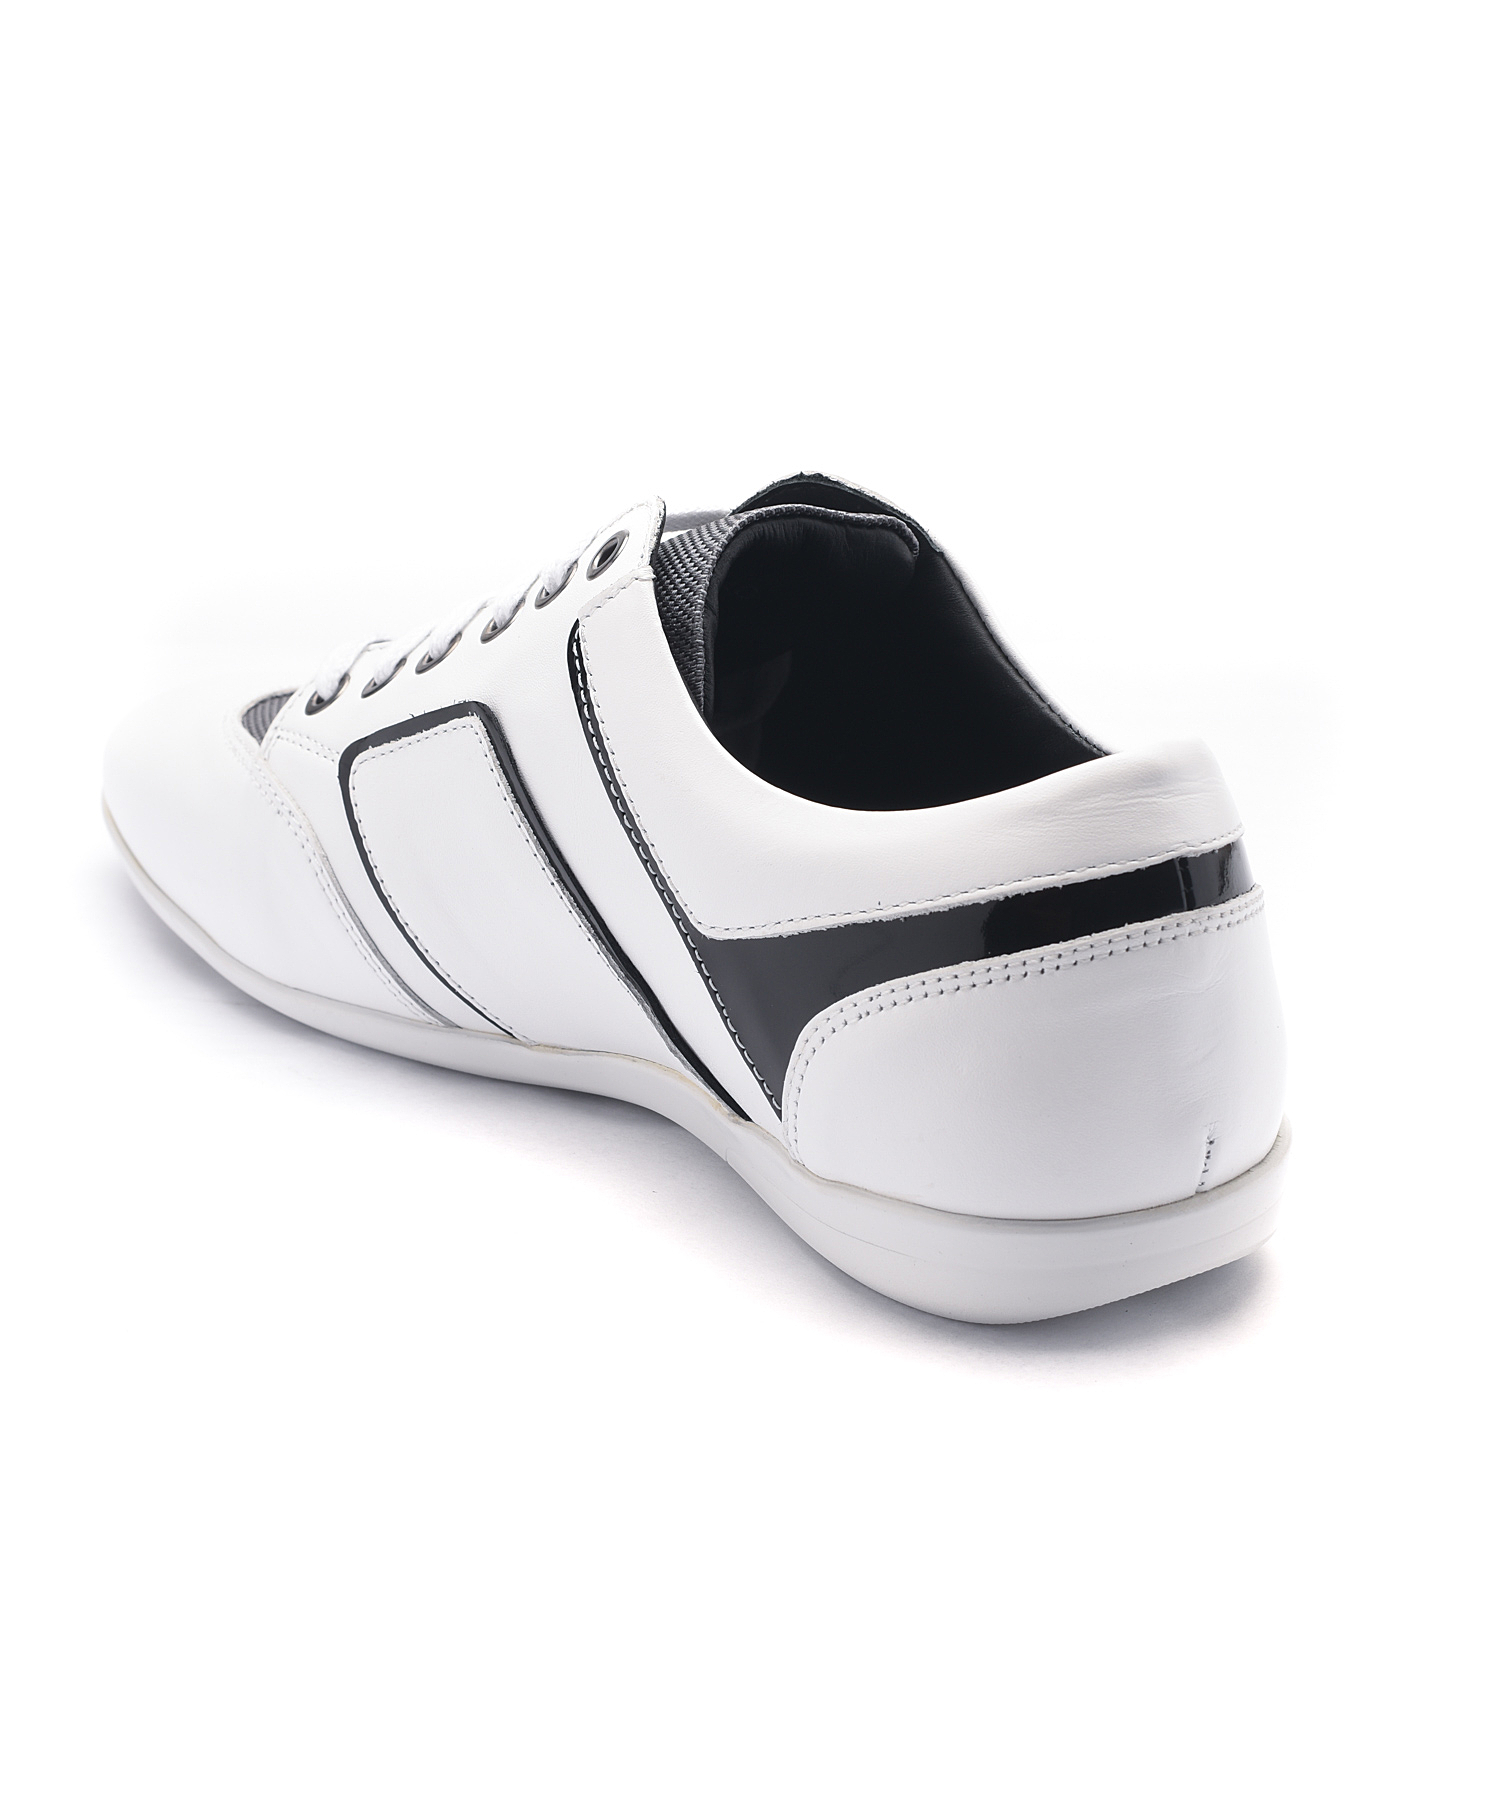 versace leather low top sneakers in white for lyst